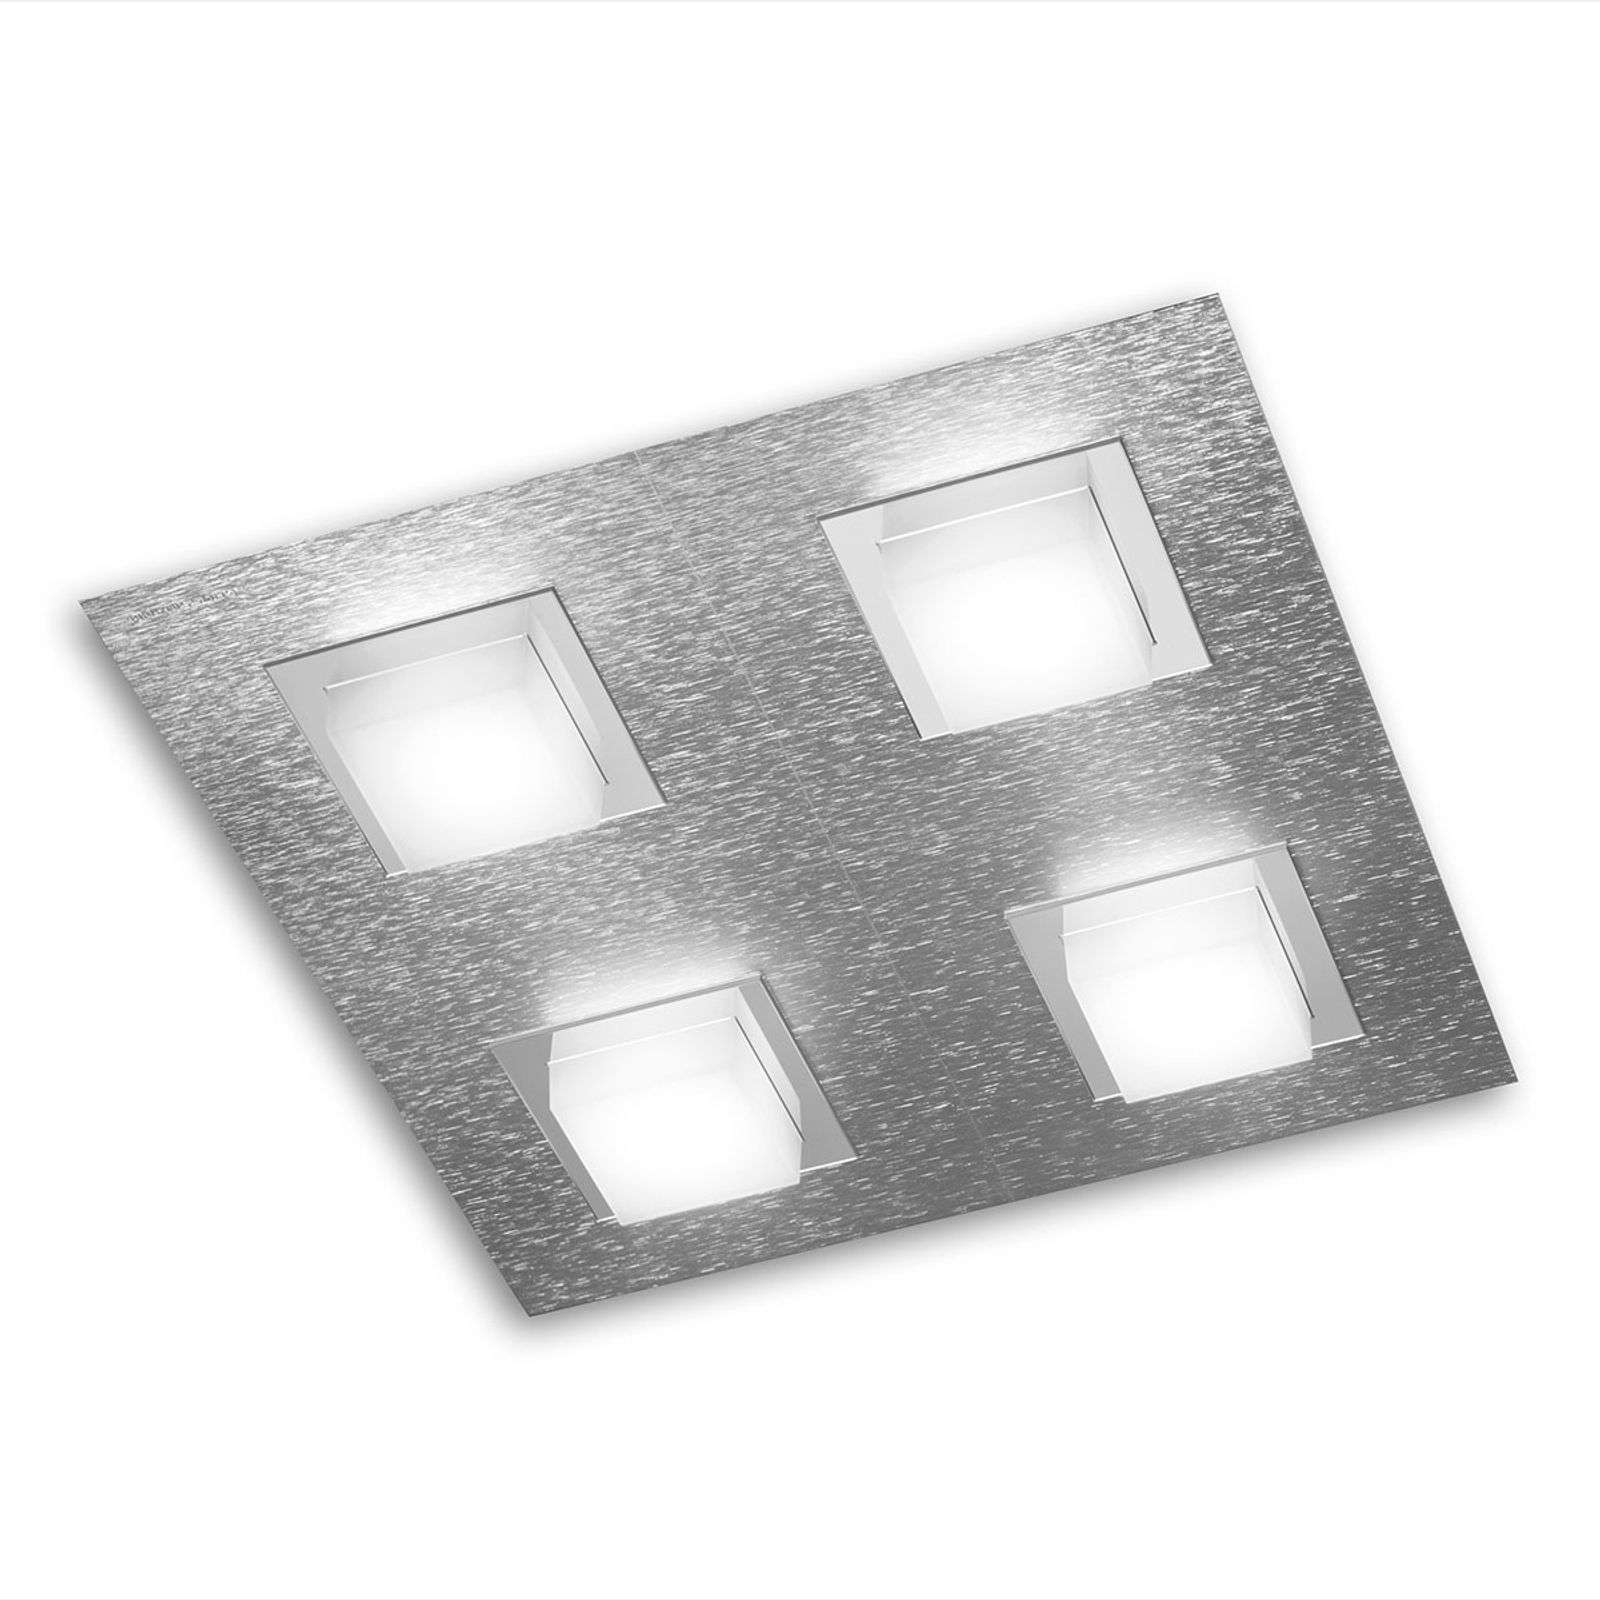 GROSSMANN Basic plafón LED, aluminio